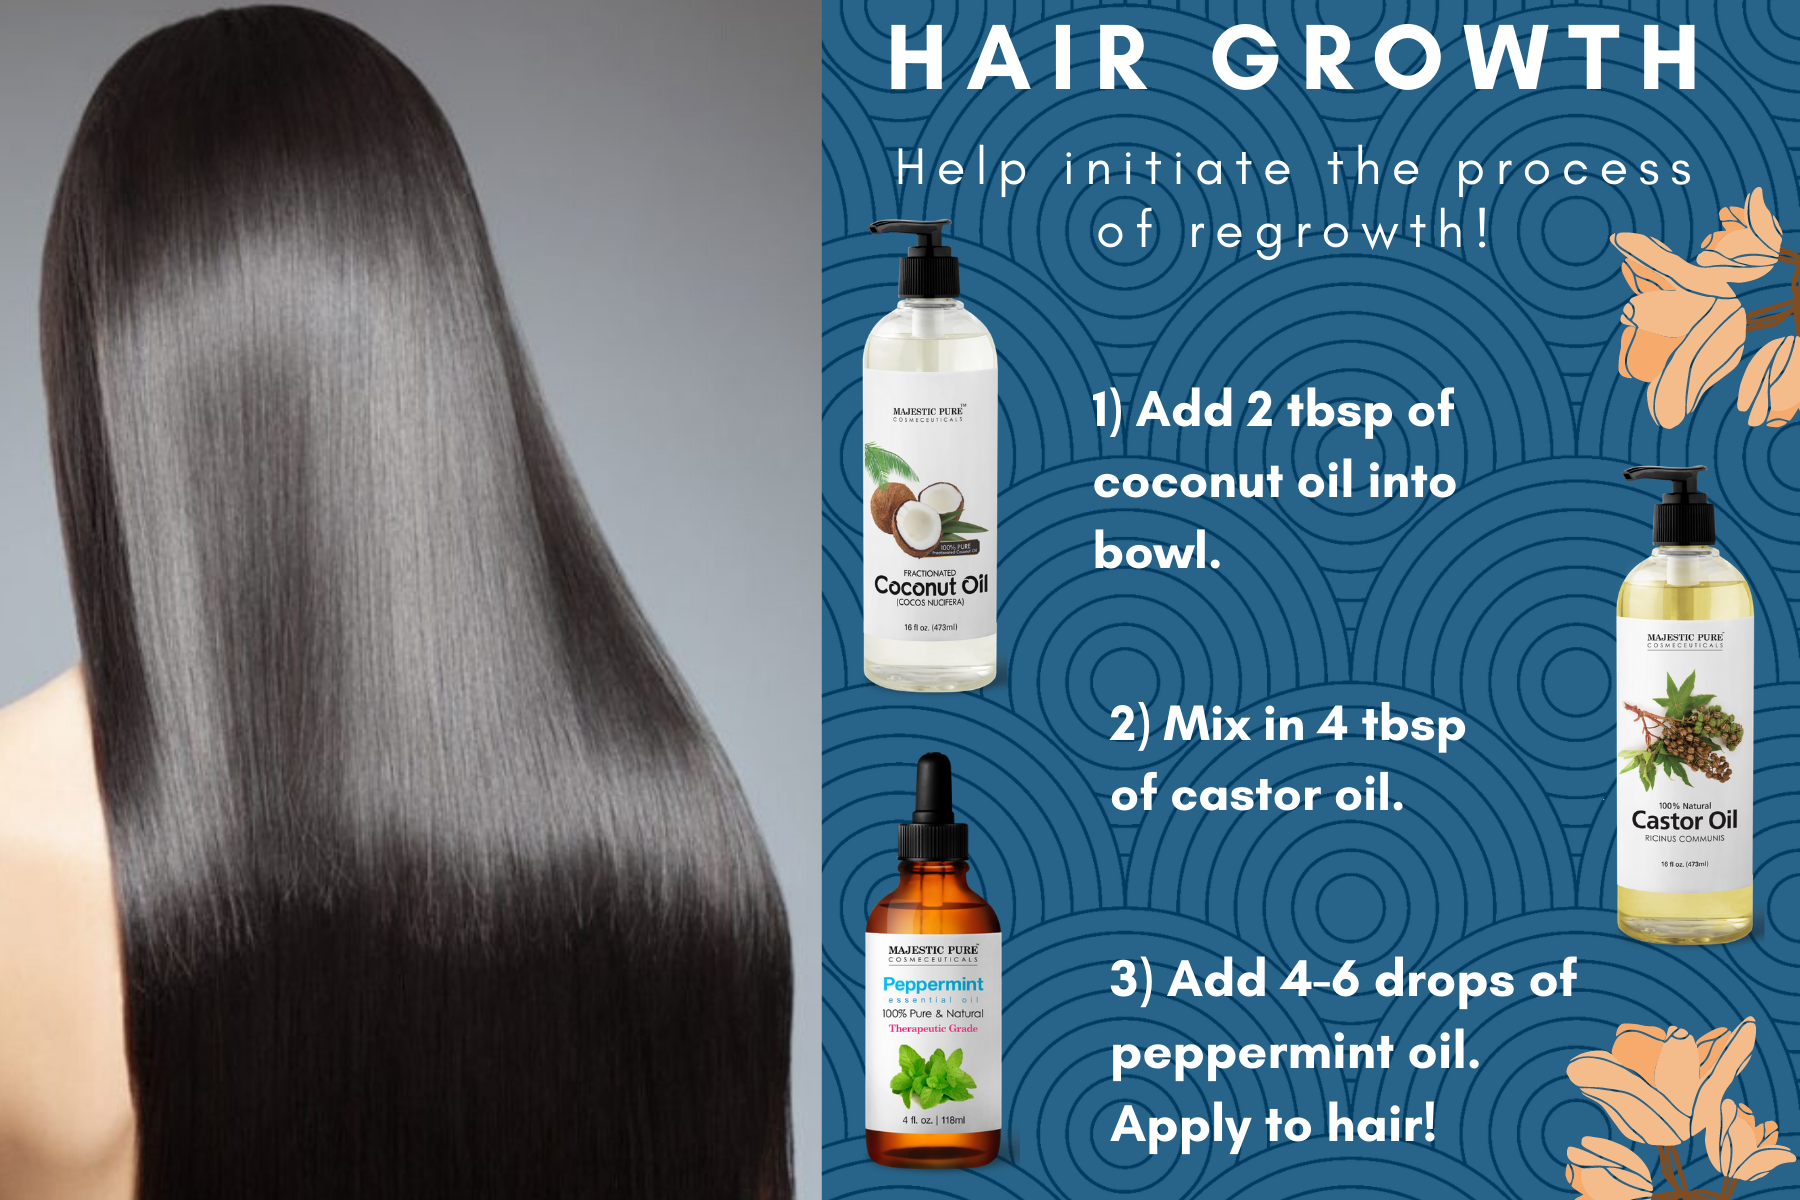 Diy All Natural Hair Growth With Fractionated Coconut Oil Castor Oil And Peppermint Oil Help Hair Growth Coconut Oil Hair Coconut Oil Hair Mask